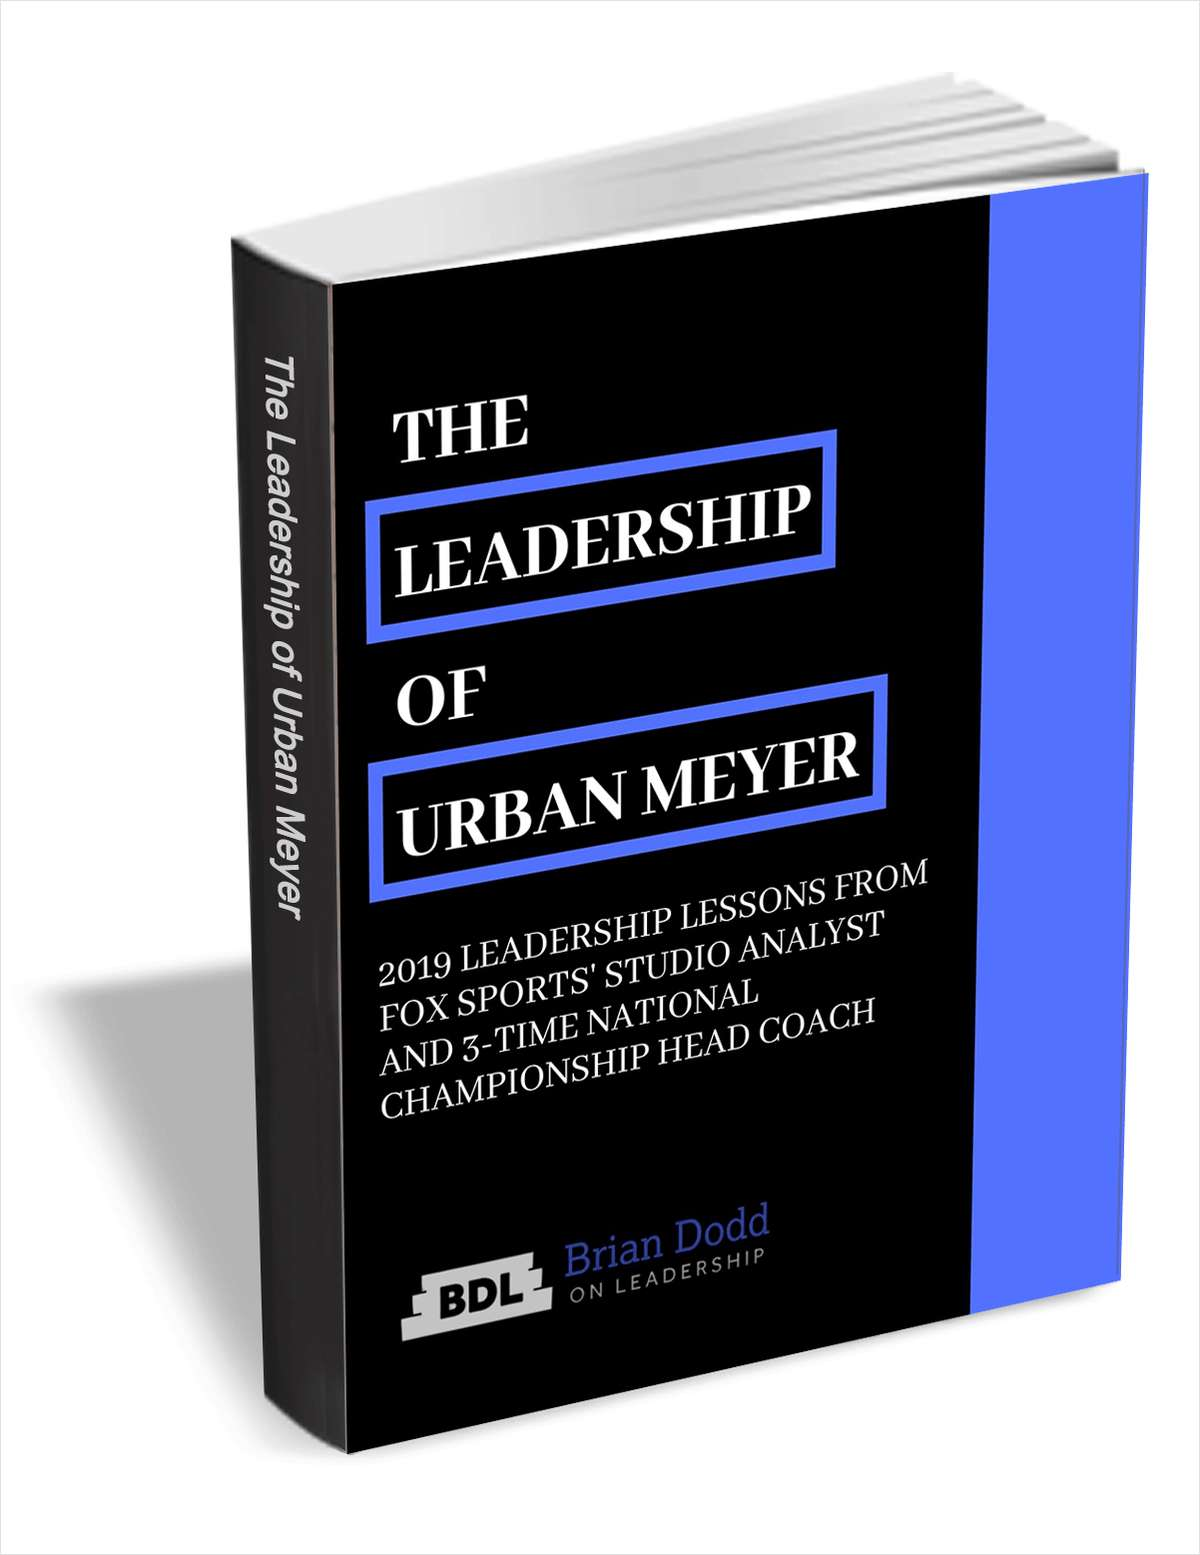 The Leadership of Urban Meyer - 2019 Leadership Lessons from Fox Sports' Studio Analyst and 3-Time National Championship Head Coach